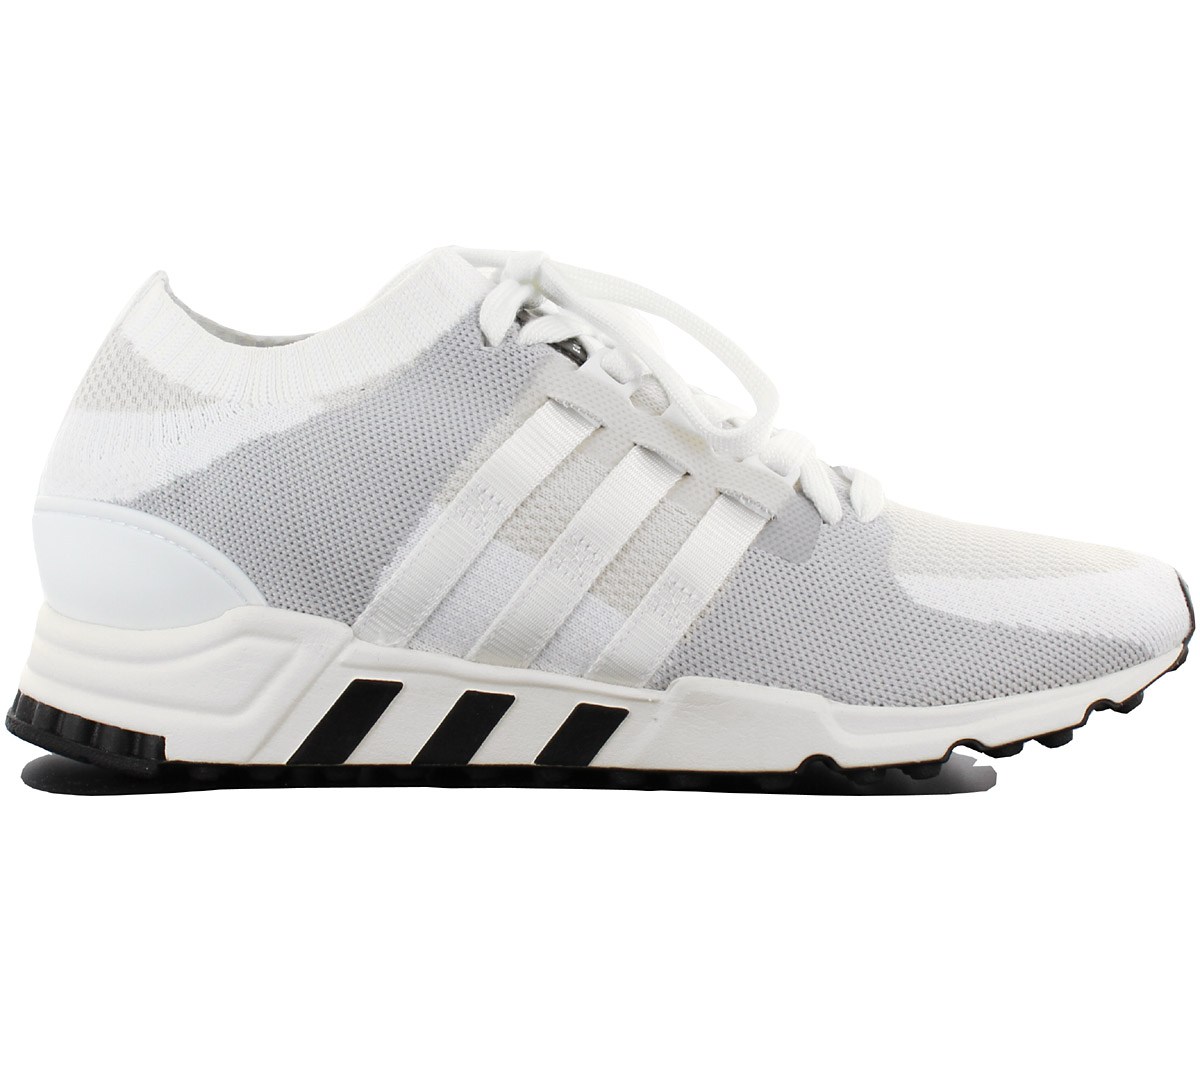 Adidas Originals Equipment Support RF Torsion Torsion Torsion Zapatillas Hombre Retro eqt 19abde